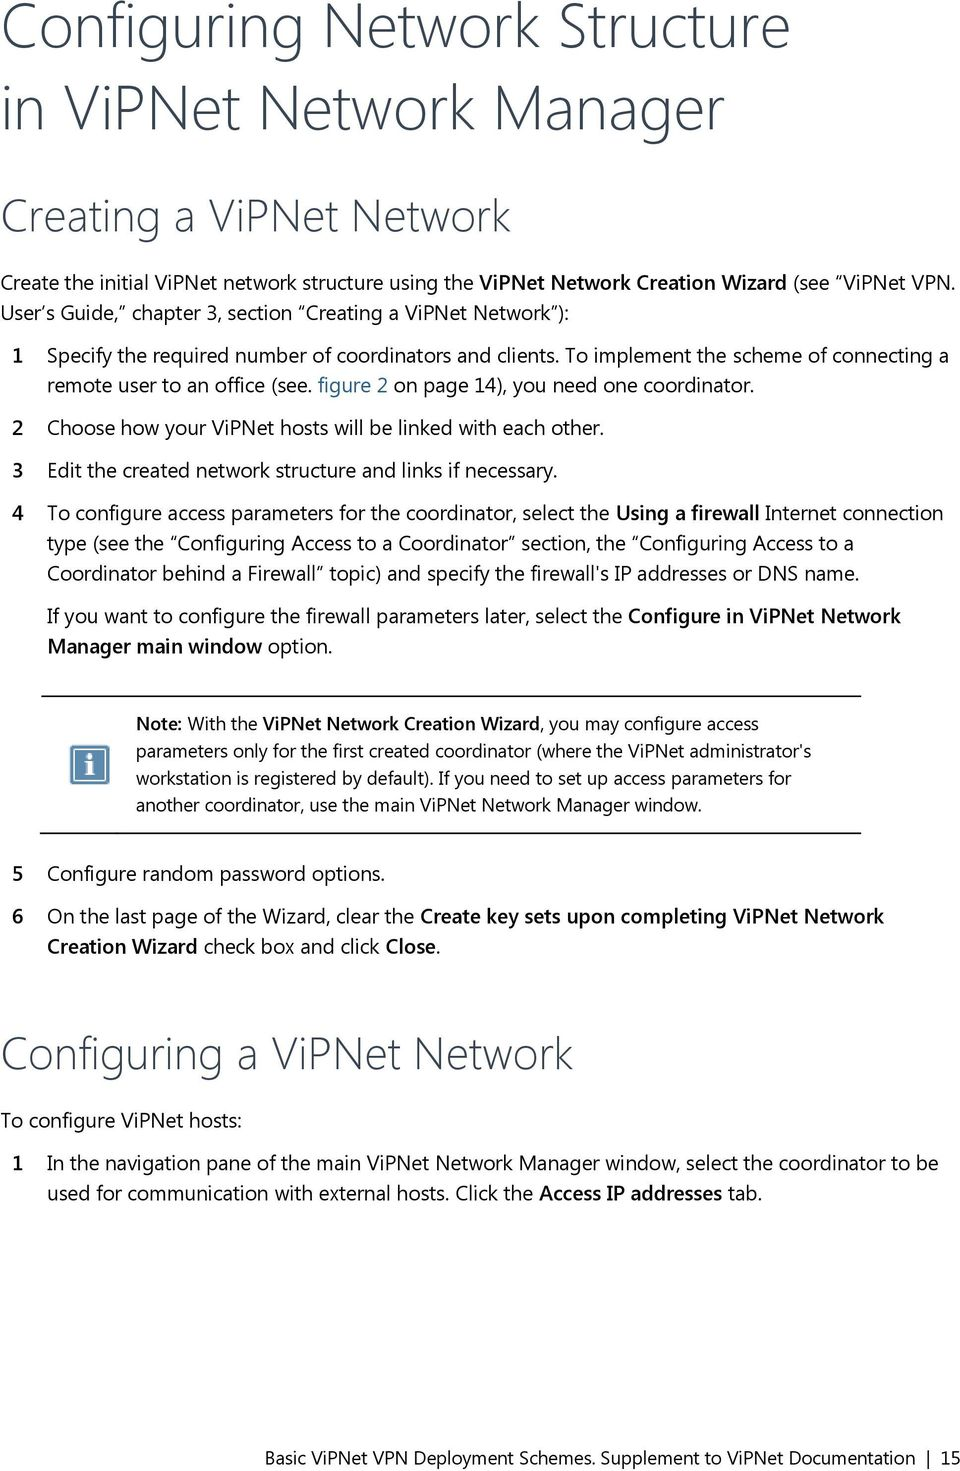 figure 2 on page 14), you need one coordinator. 2 Choose how your ViPNet hosts will be linked with each other. 3 Edit the created network structure and links if necessary.